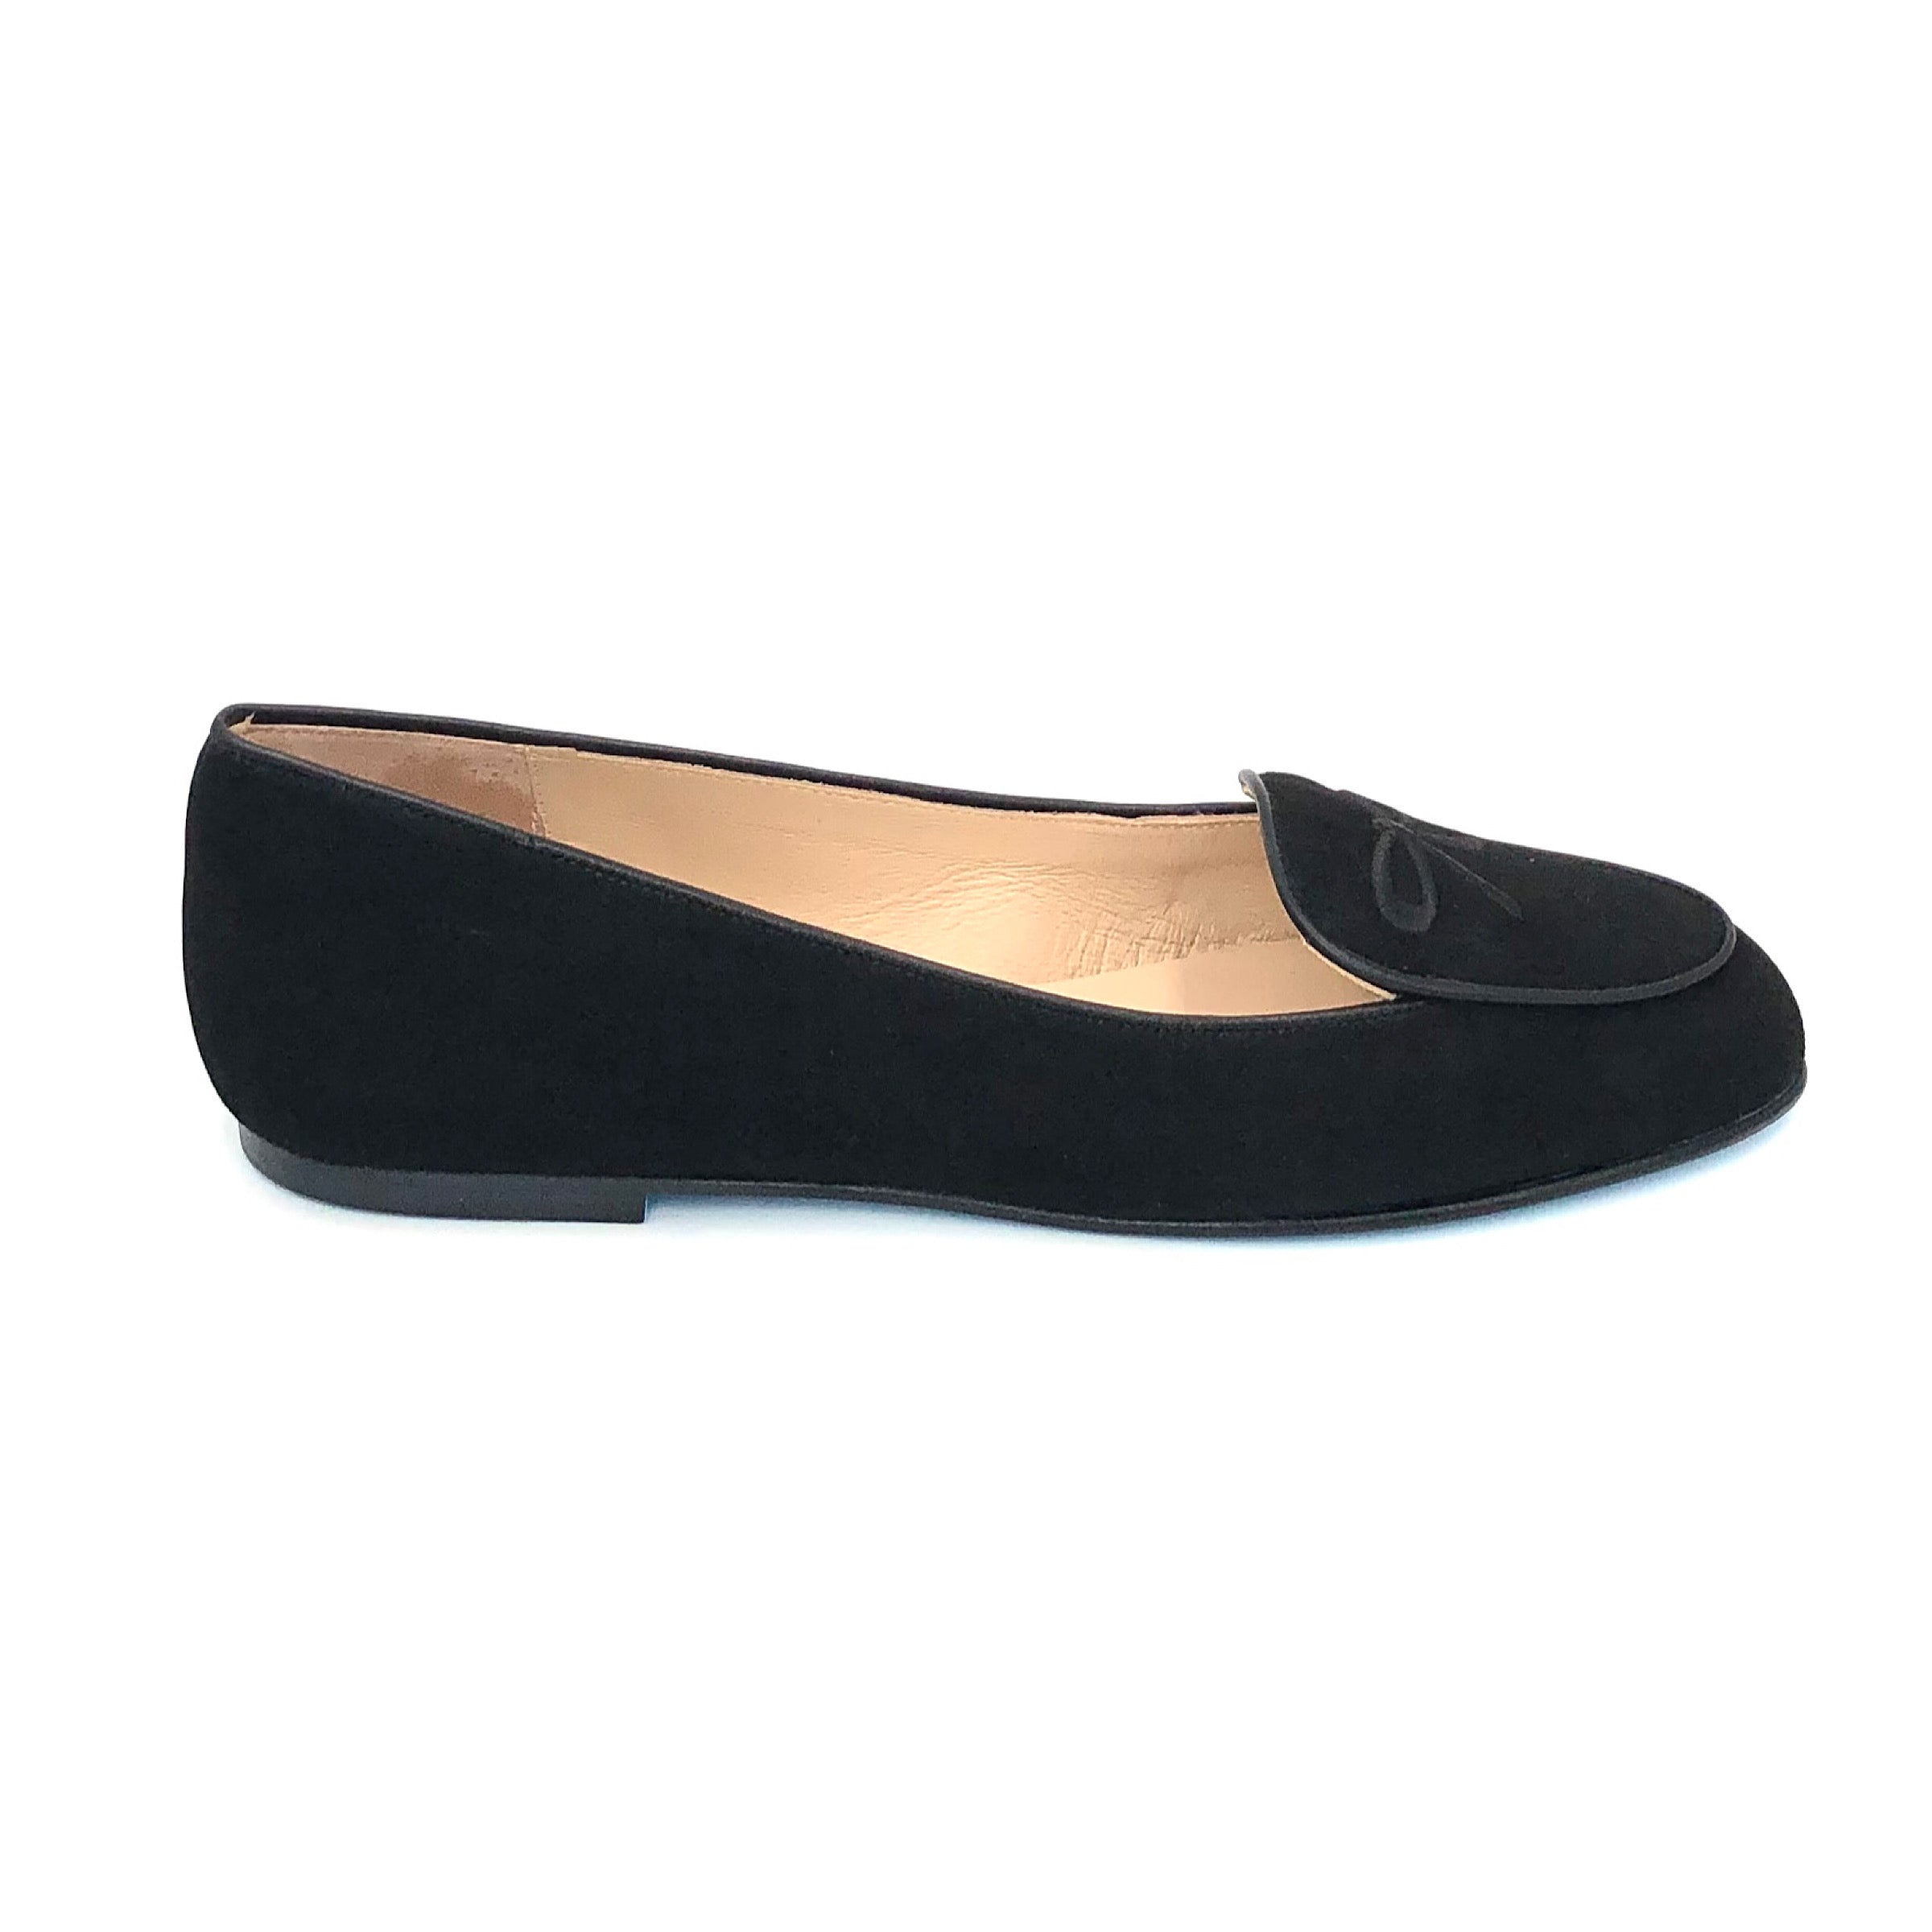 The Belgium Loafer in Black